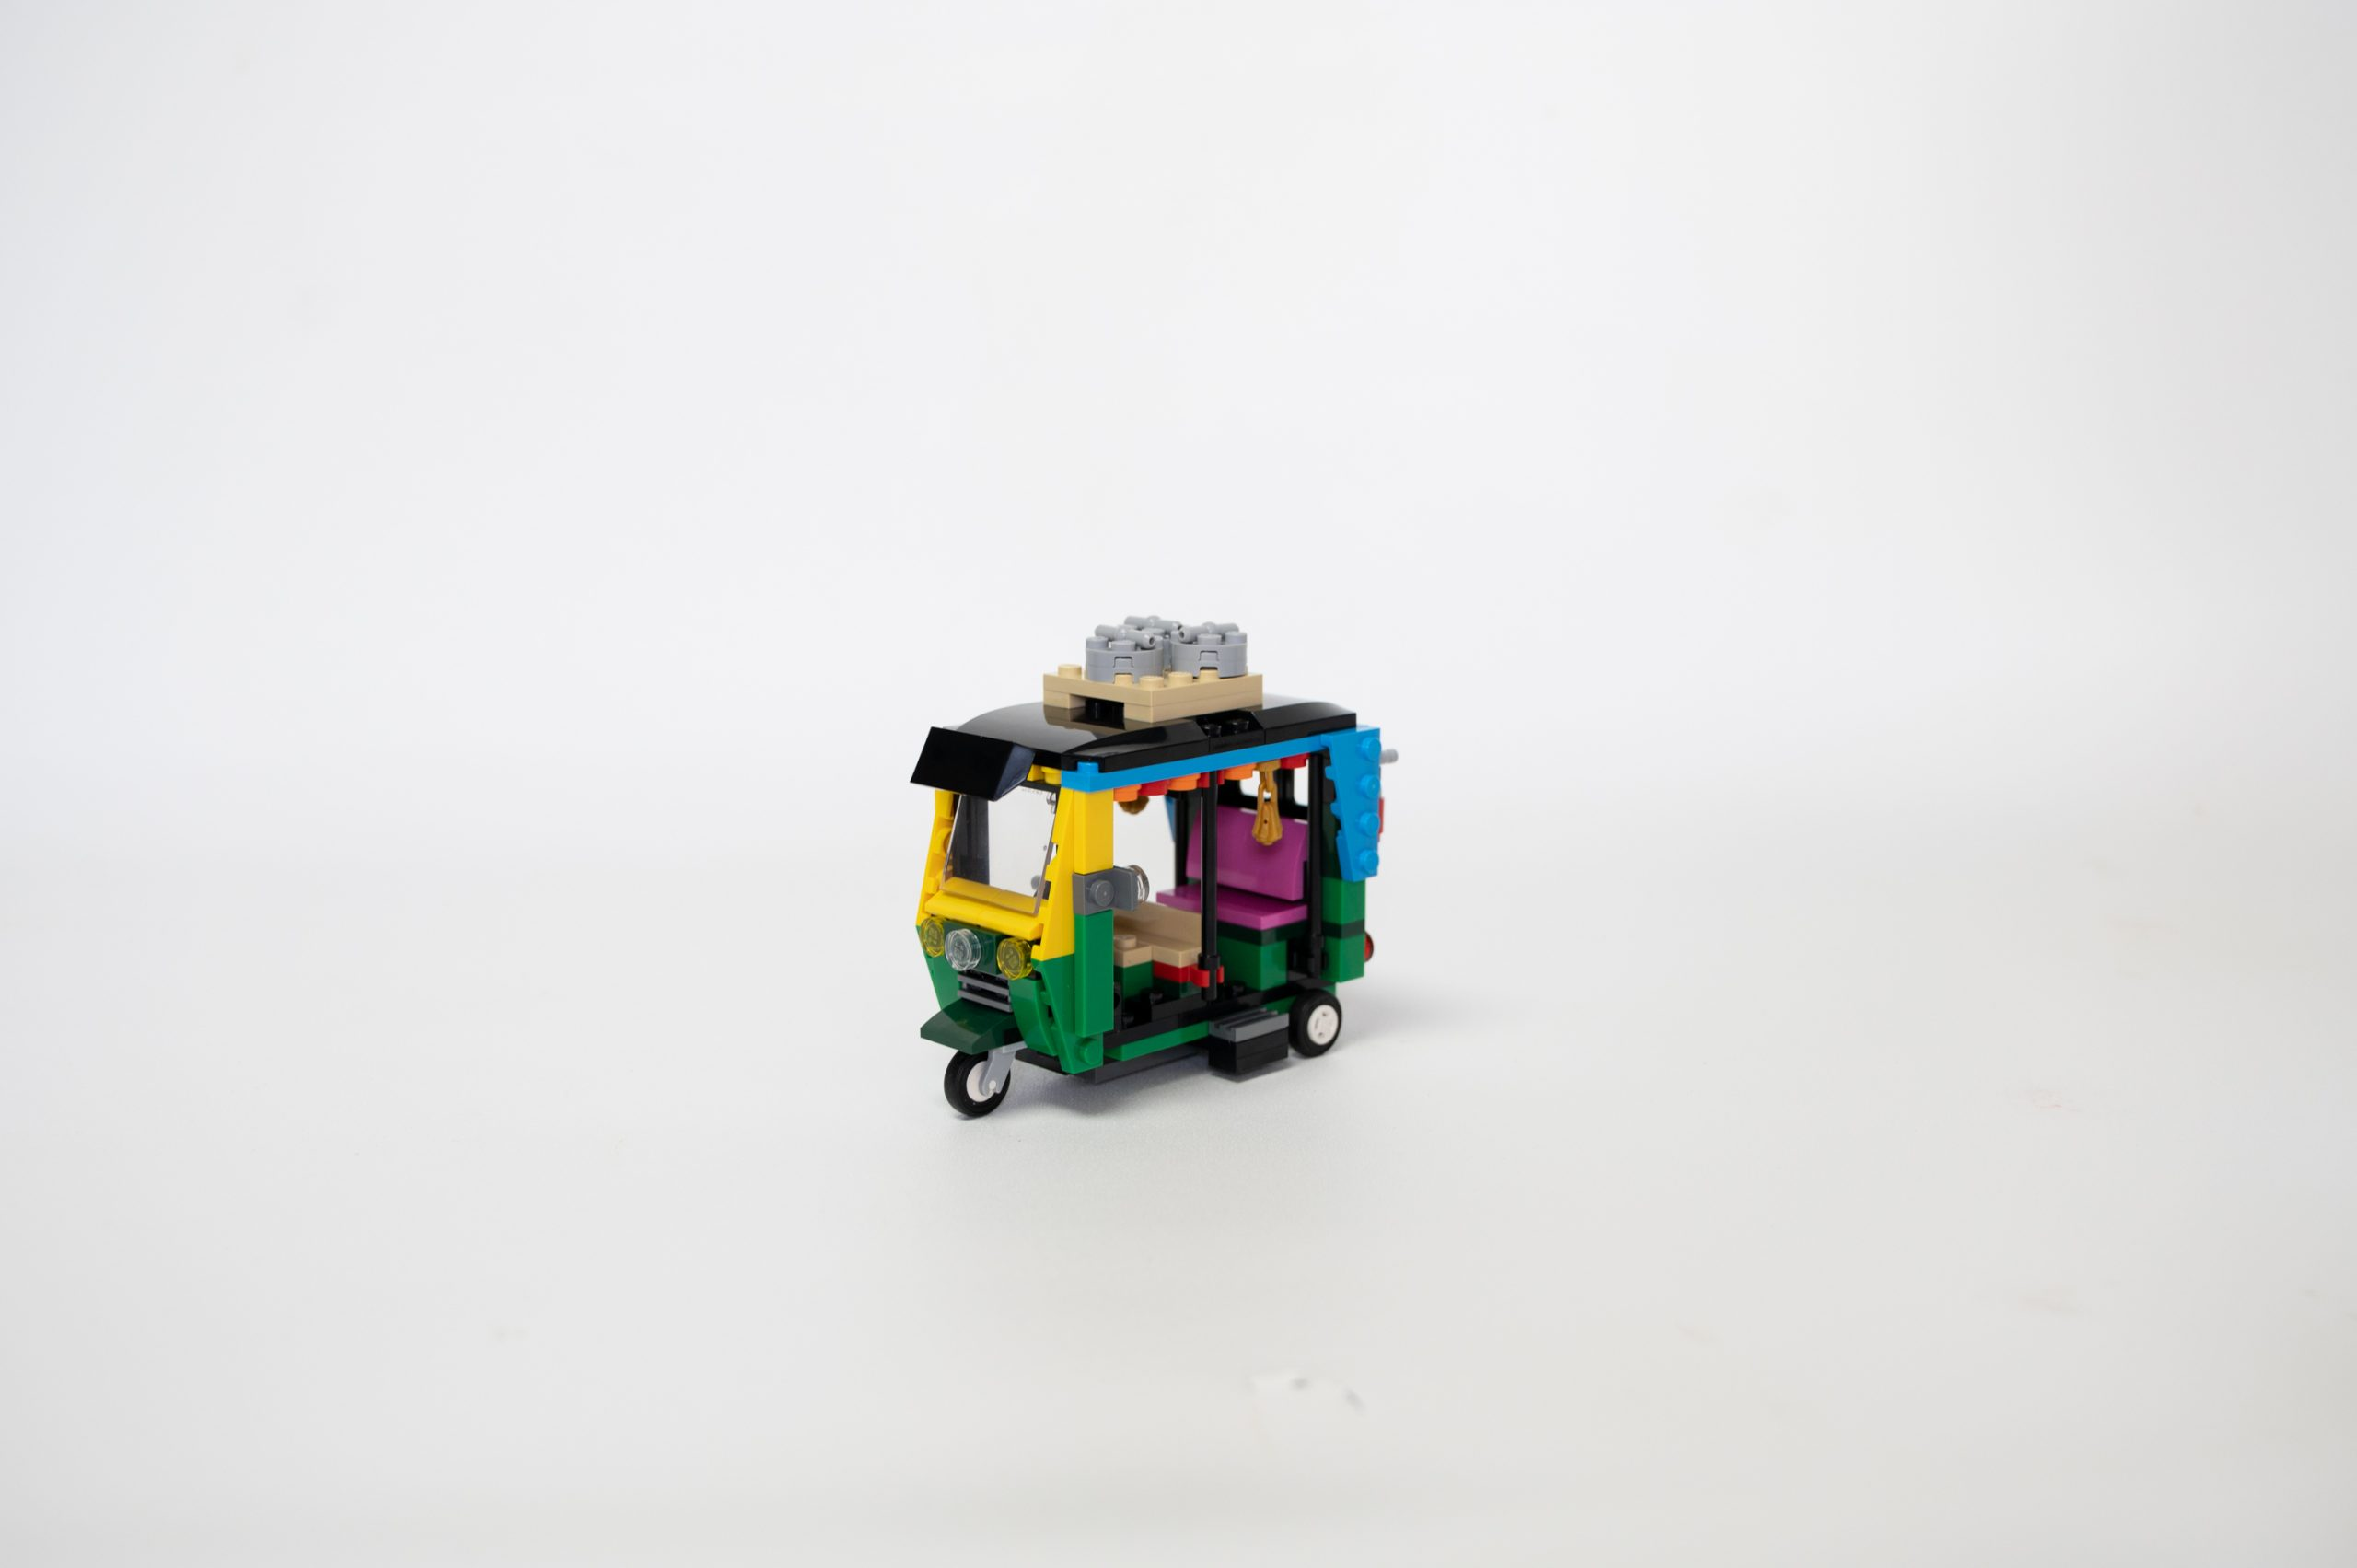 An image of a kids toy